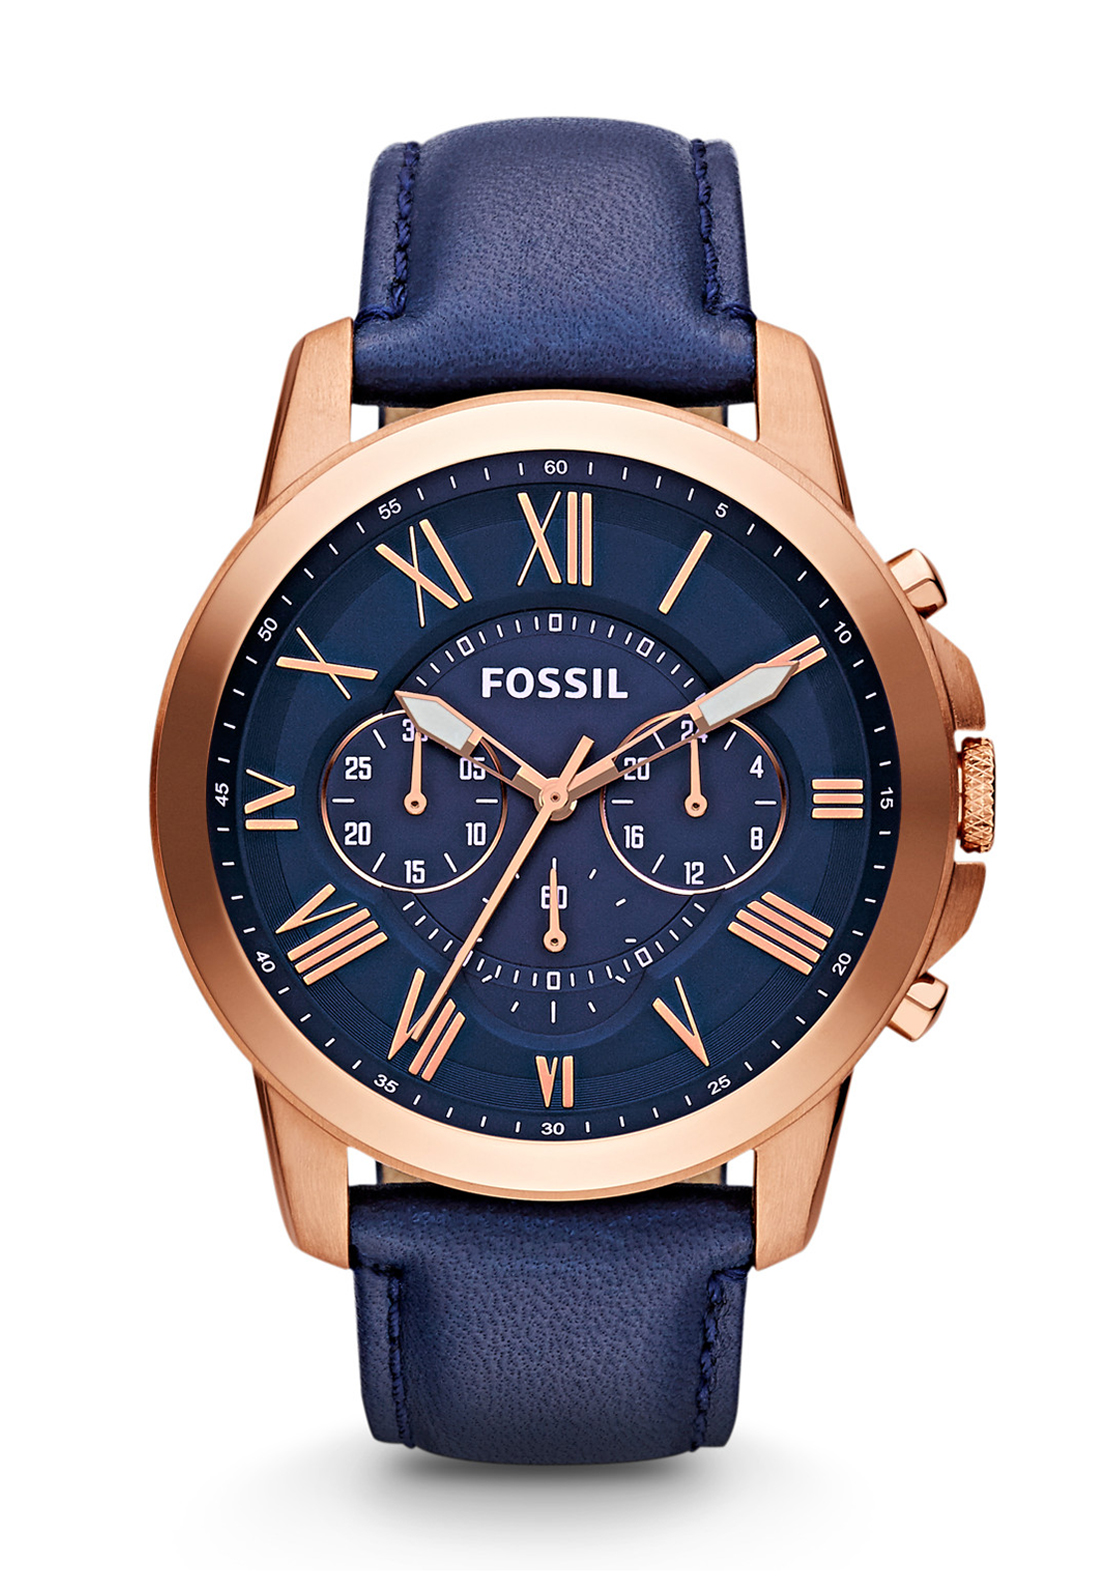 Fossil Mens Grant Chronograph Leather Strap Watch, Navy